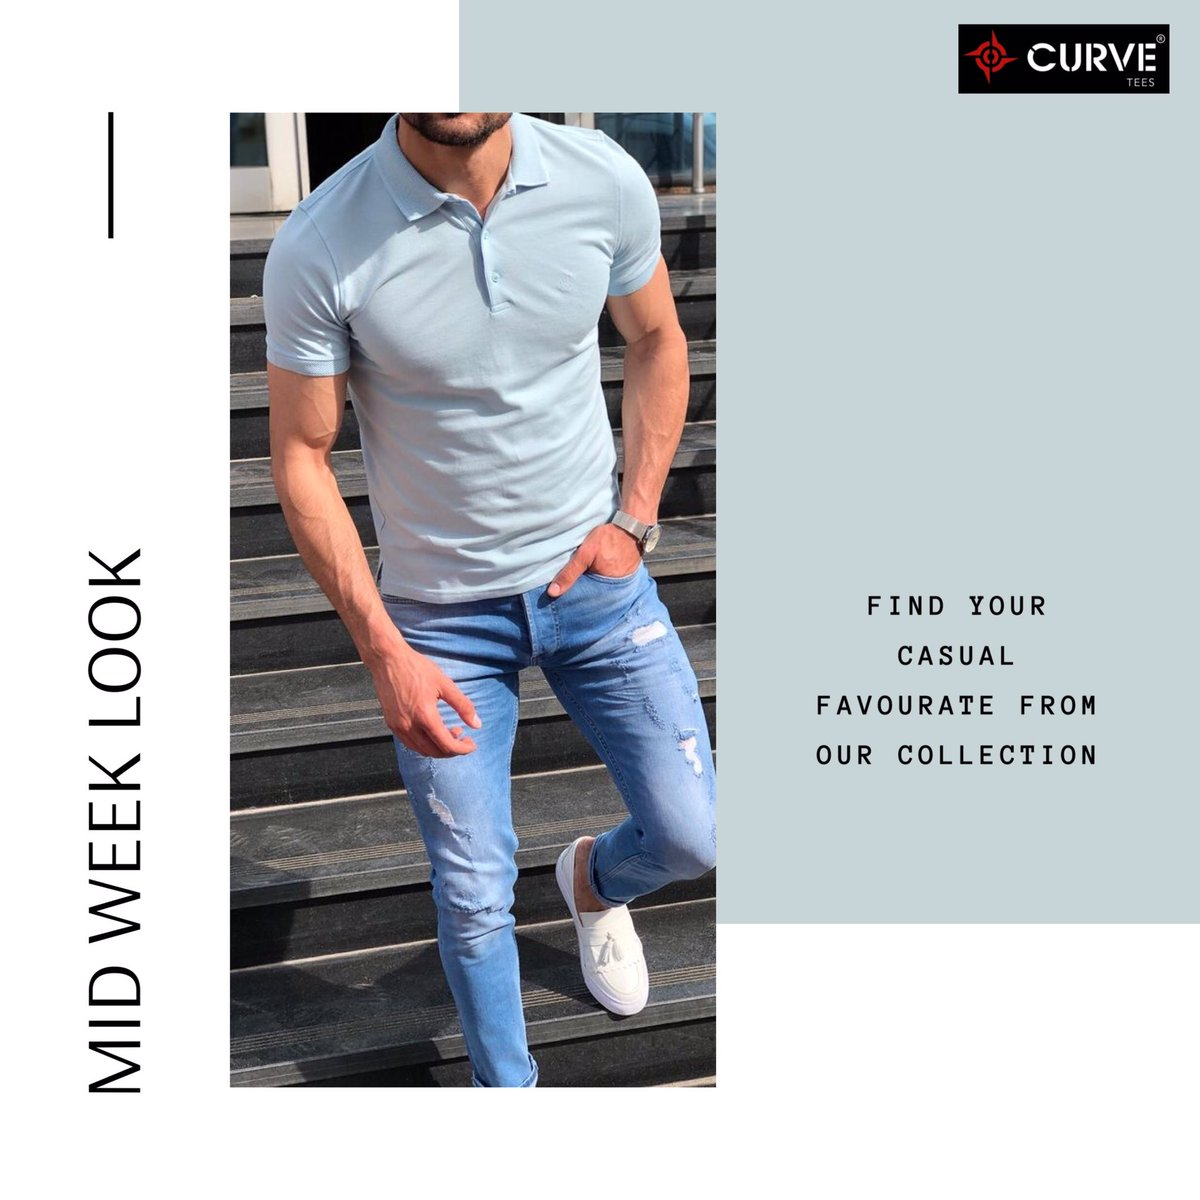 Perfect look for casual Friday from Curve Garments. . . . #ReadywithCurveTees #fashionformen #fridaylookpic.twitter.com/GTcFFaPvCc